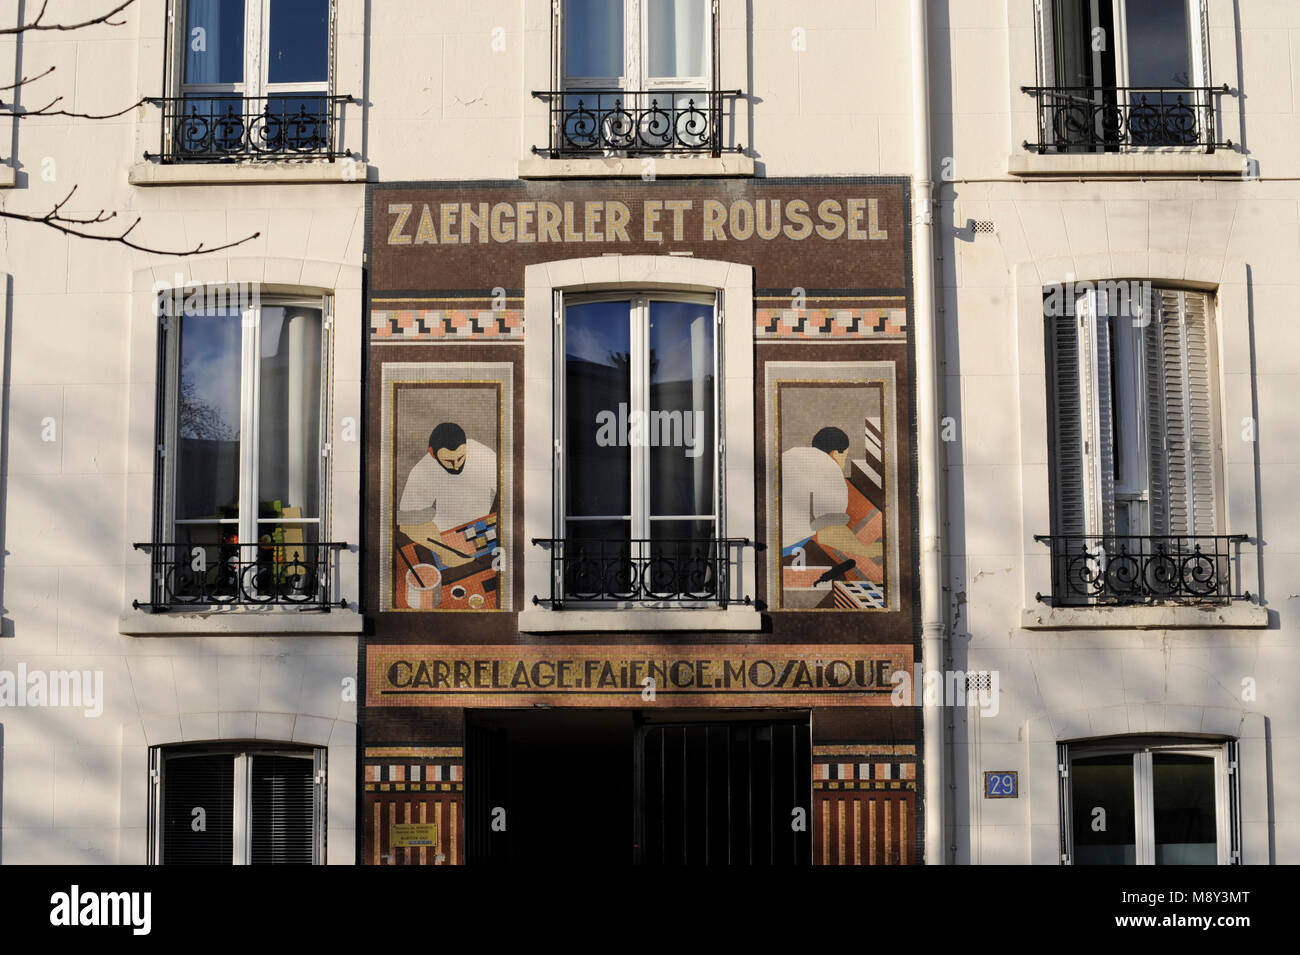 Europe Carrelage Nanterre Paris Advertise Stock Photos Paris Advertise Stock Images Alamy